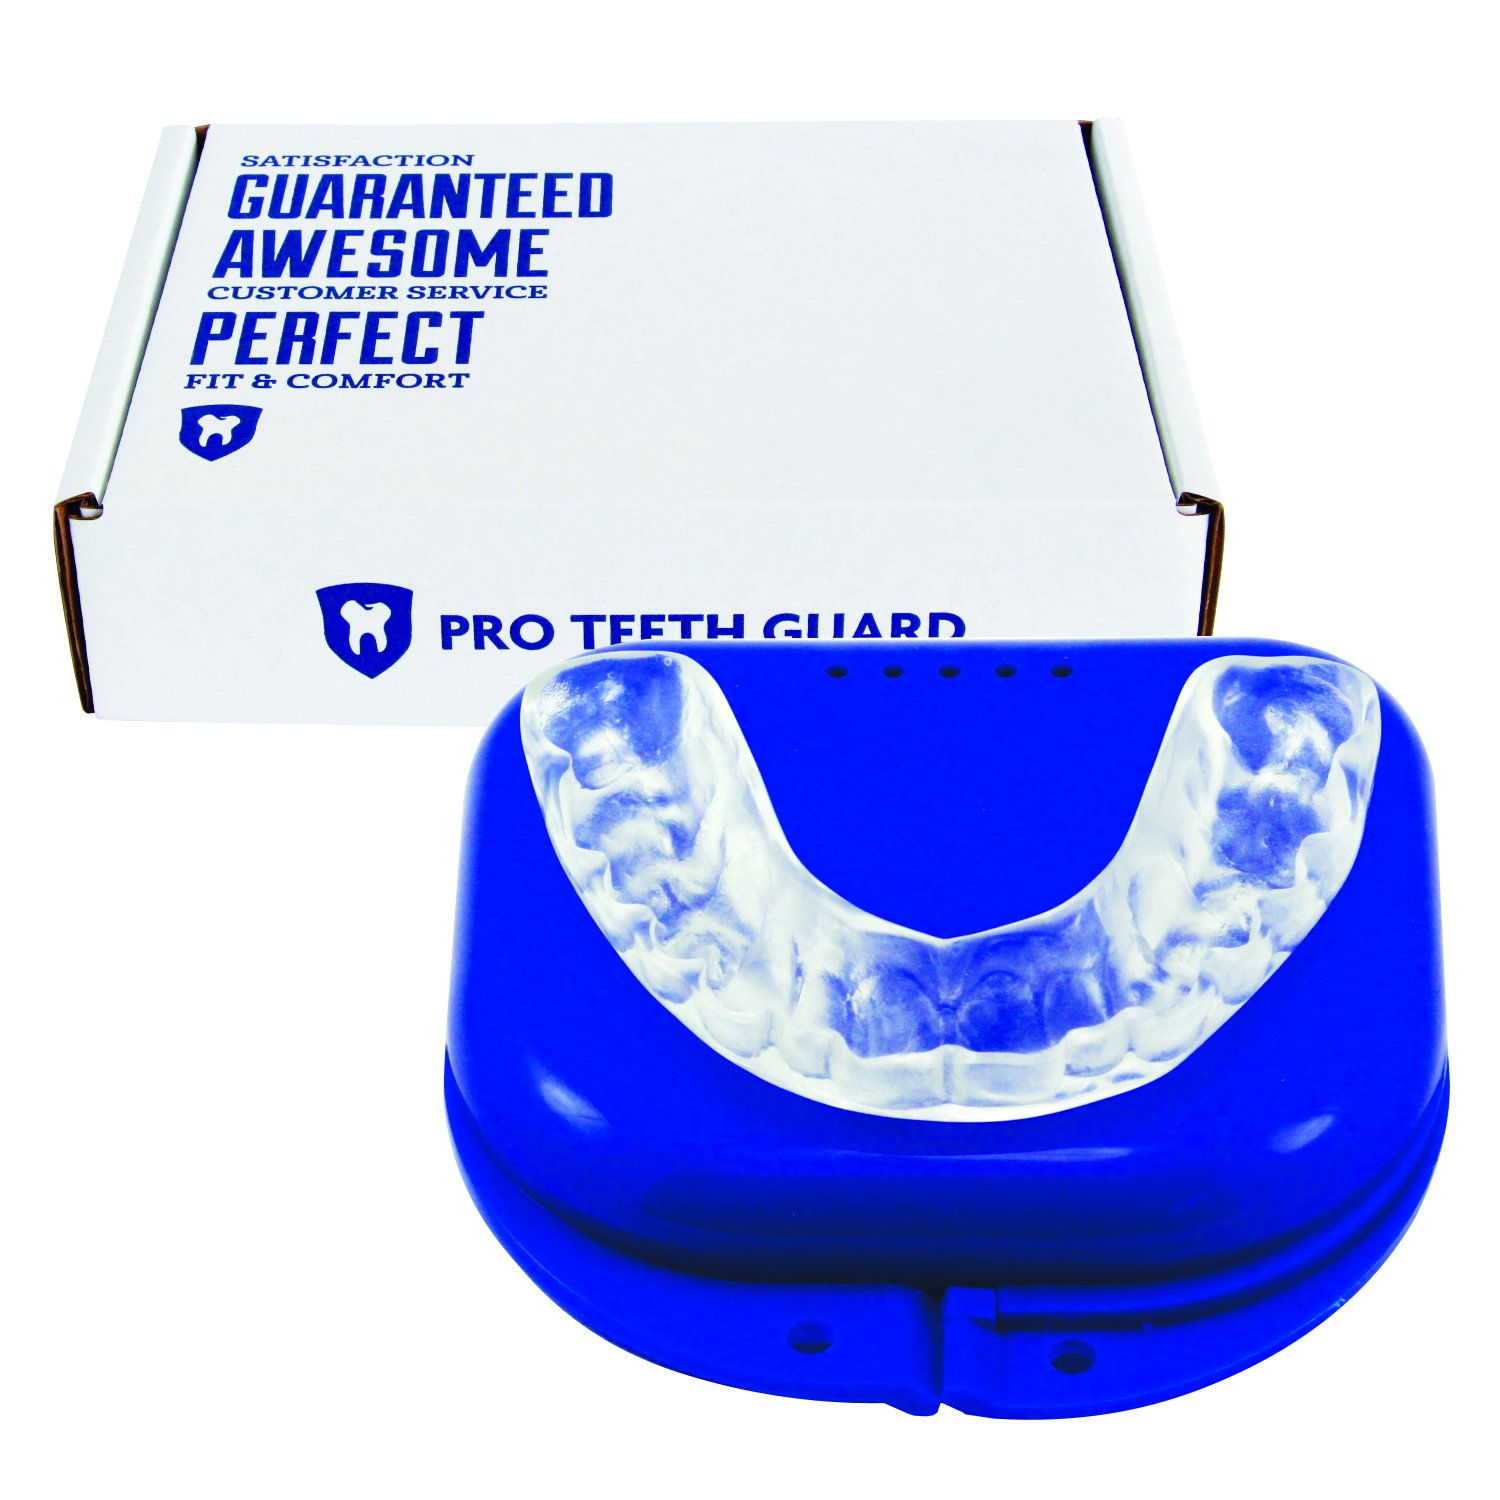 Custom Dental Night Guard for Teeth Grinding - Pro Teeth Guard. 365 Day 100% Money Back Guarantee. Size: Adult-Female. by Pro Teeth Guard